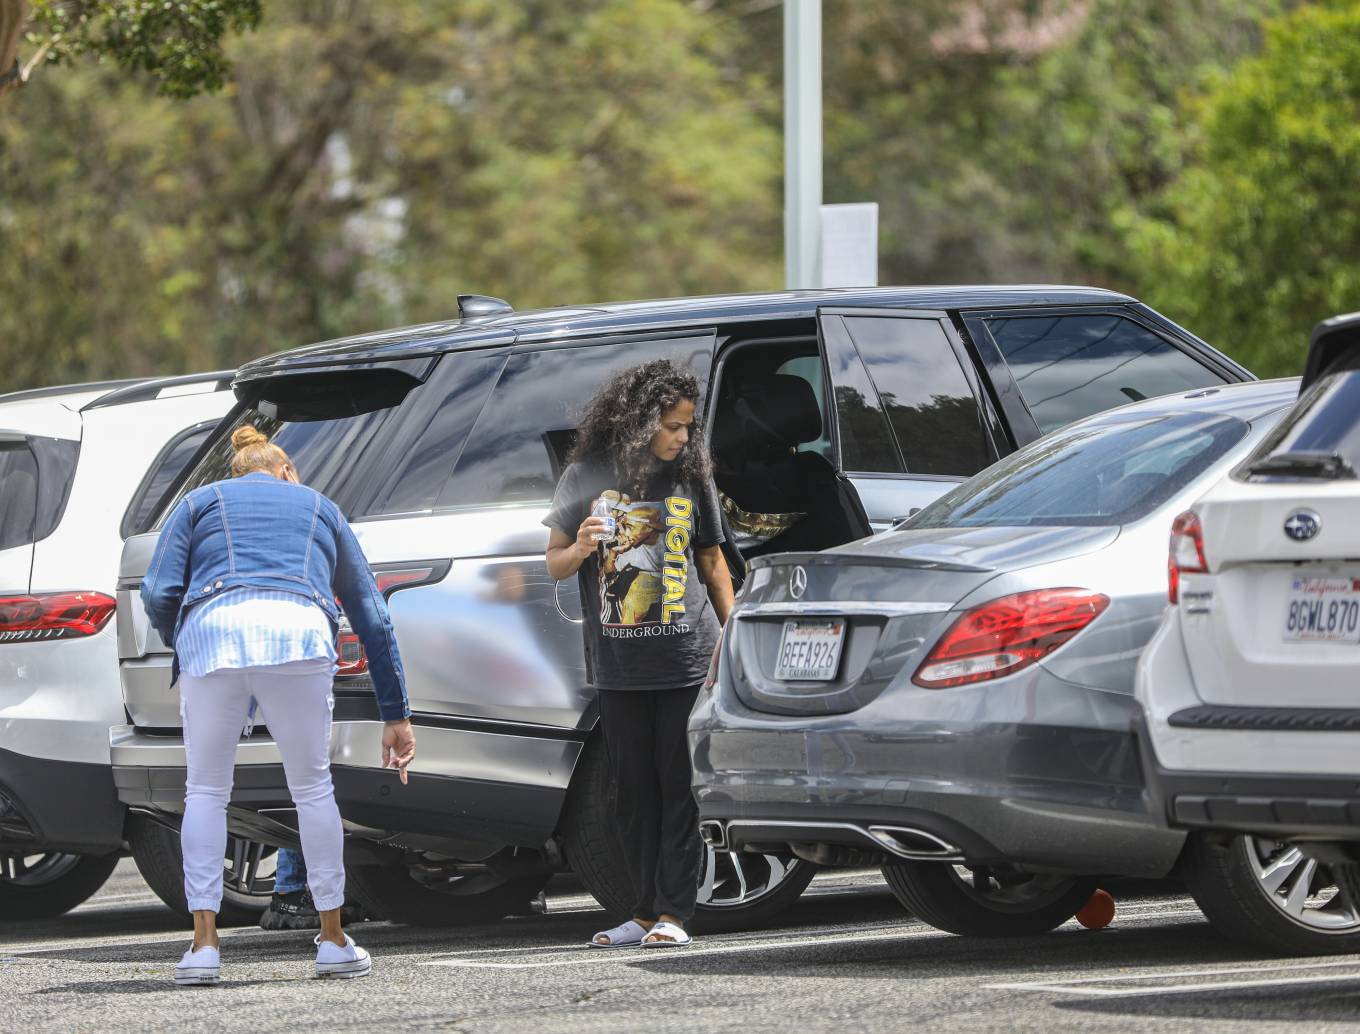 Christina Milian 2021 : Christina Milian – Seen without makeup in Los Angeles at Mercedes dealership-06